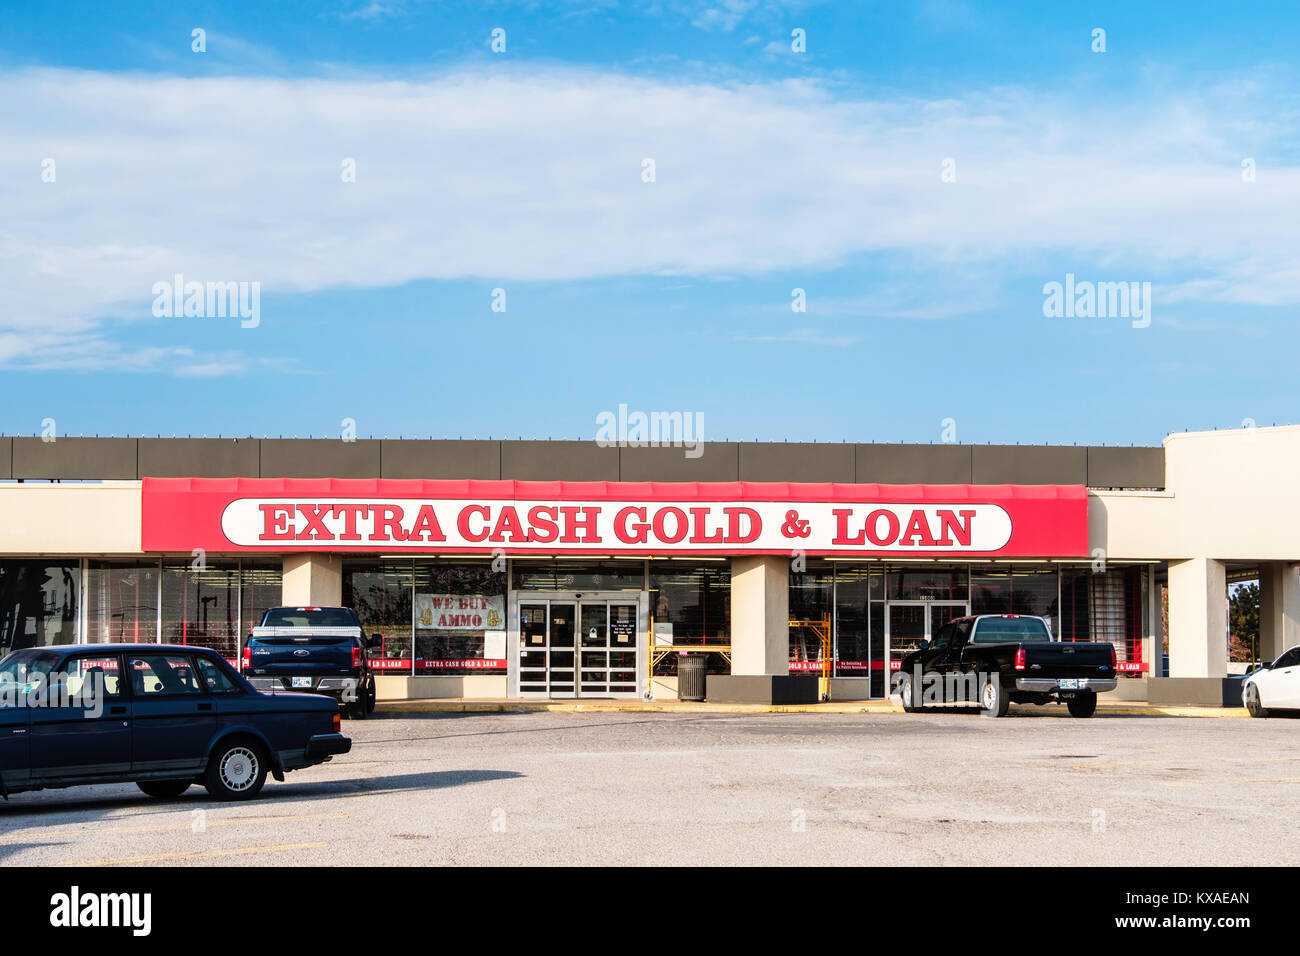 Family cash advance smyrna tn photo 1